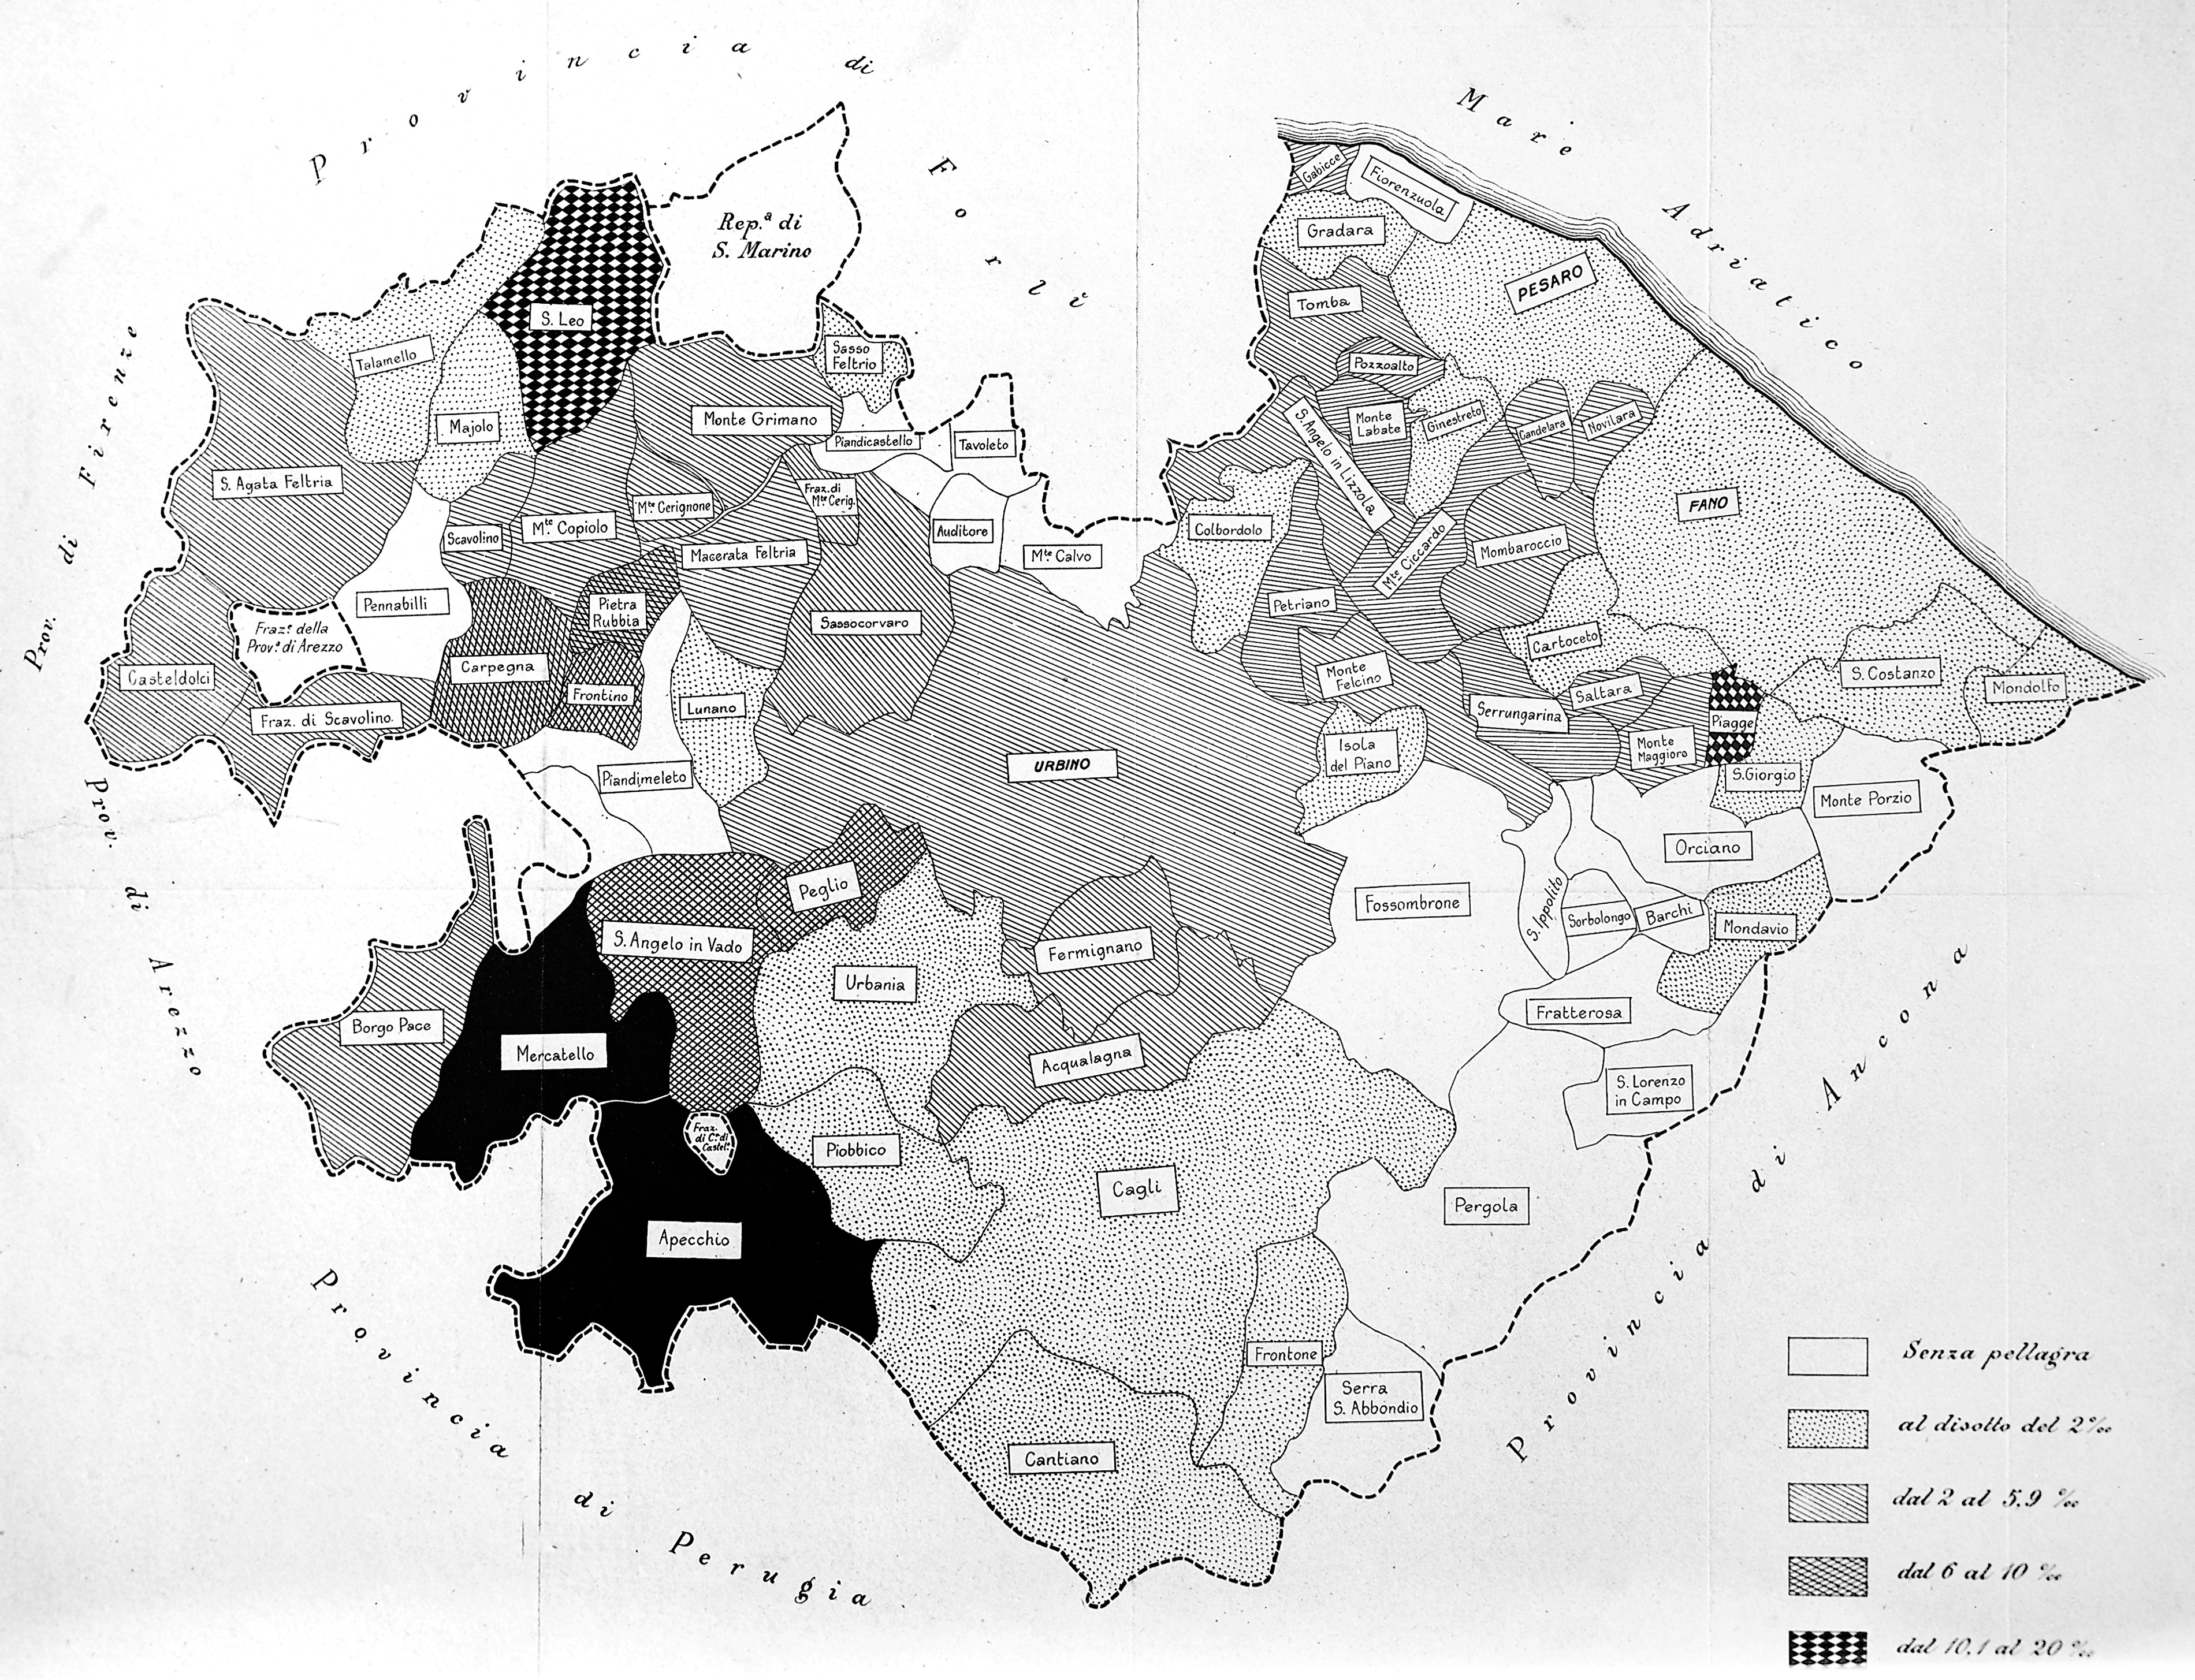 Map Of North West Italy.File Map Incidence Of Pellagra In Northwest Italy Wellcome